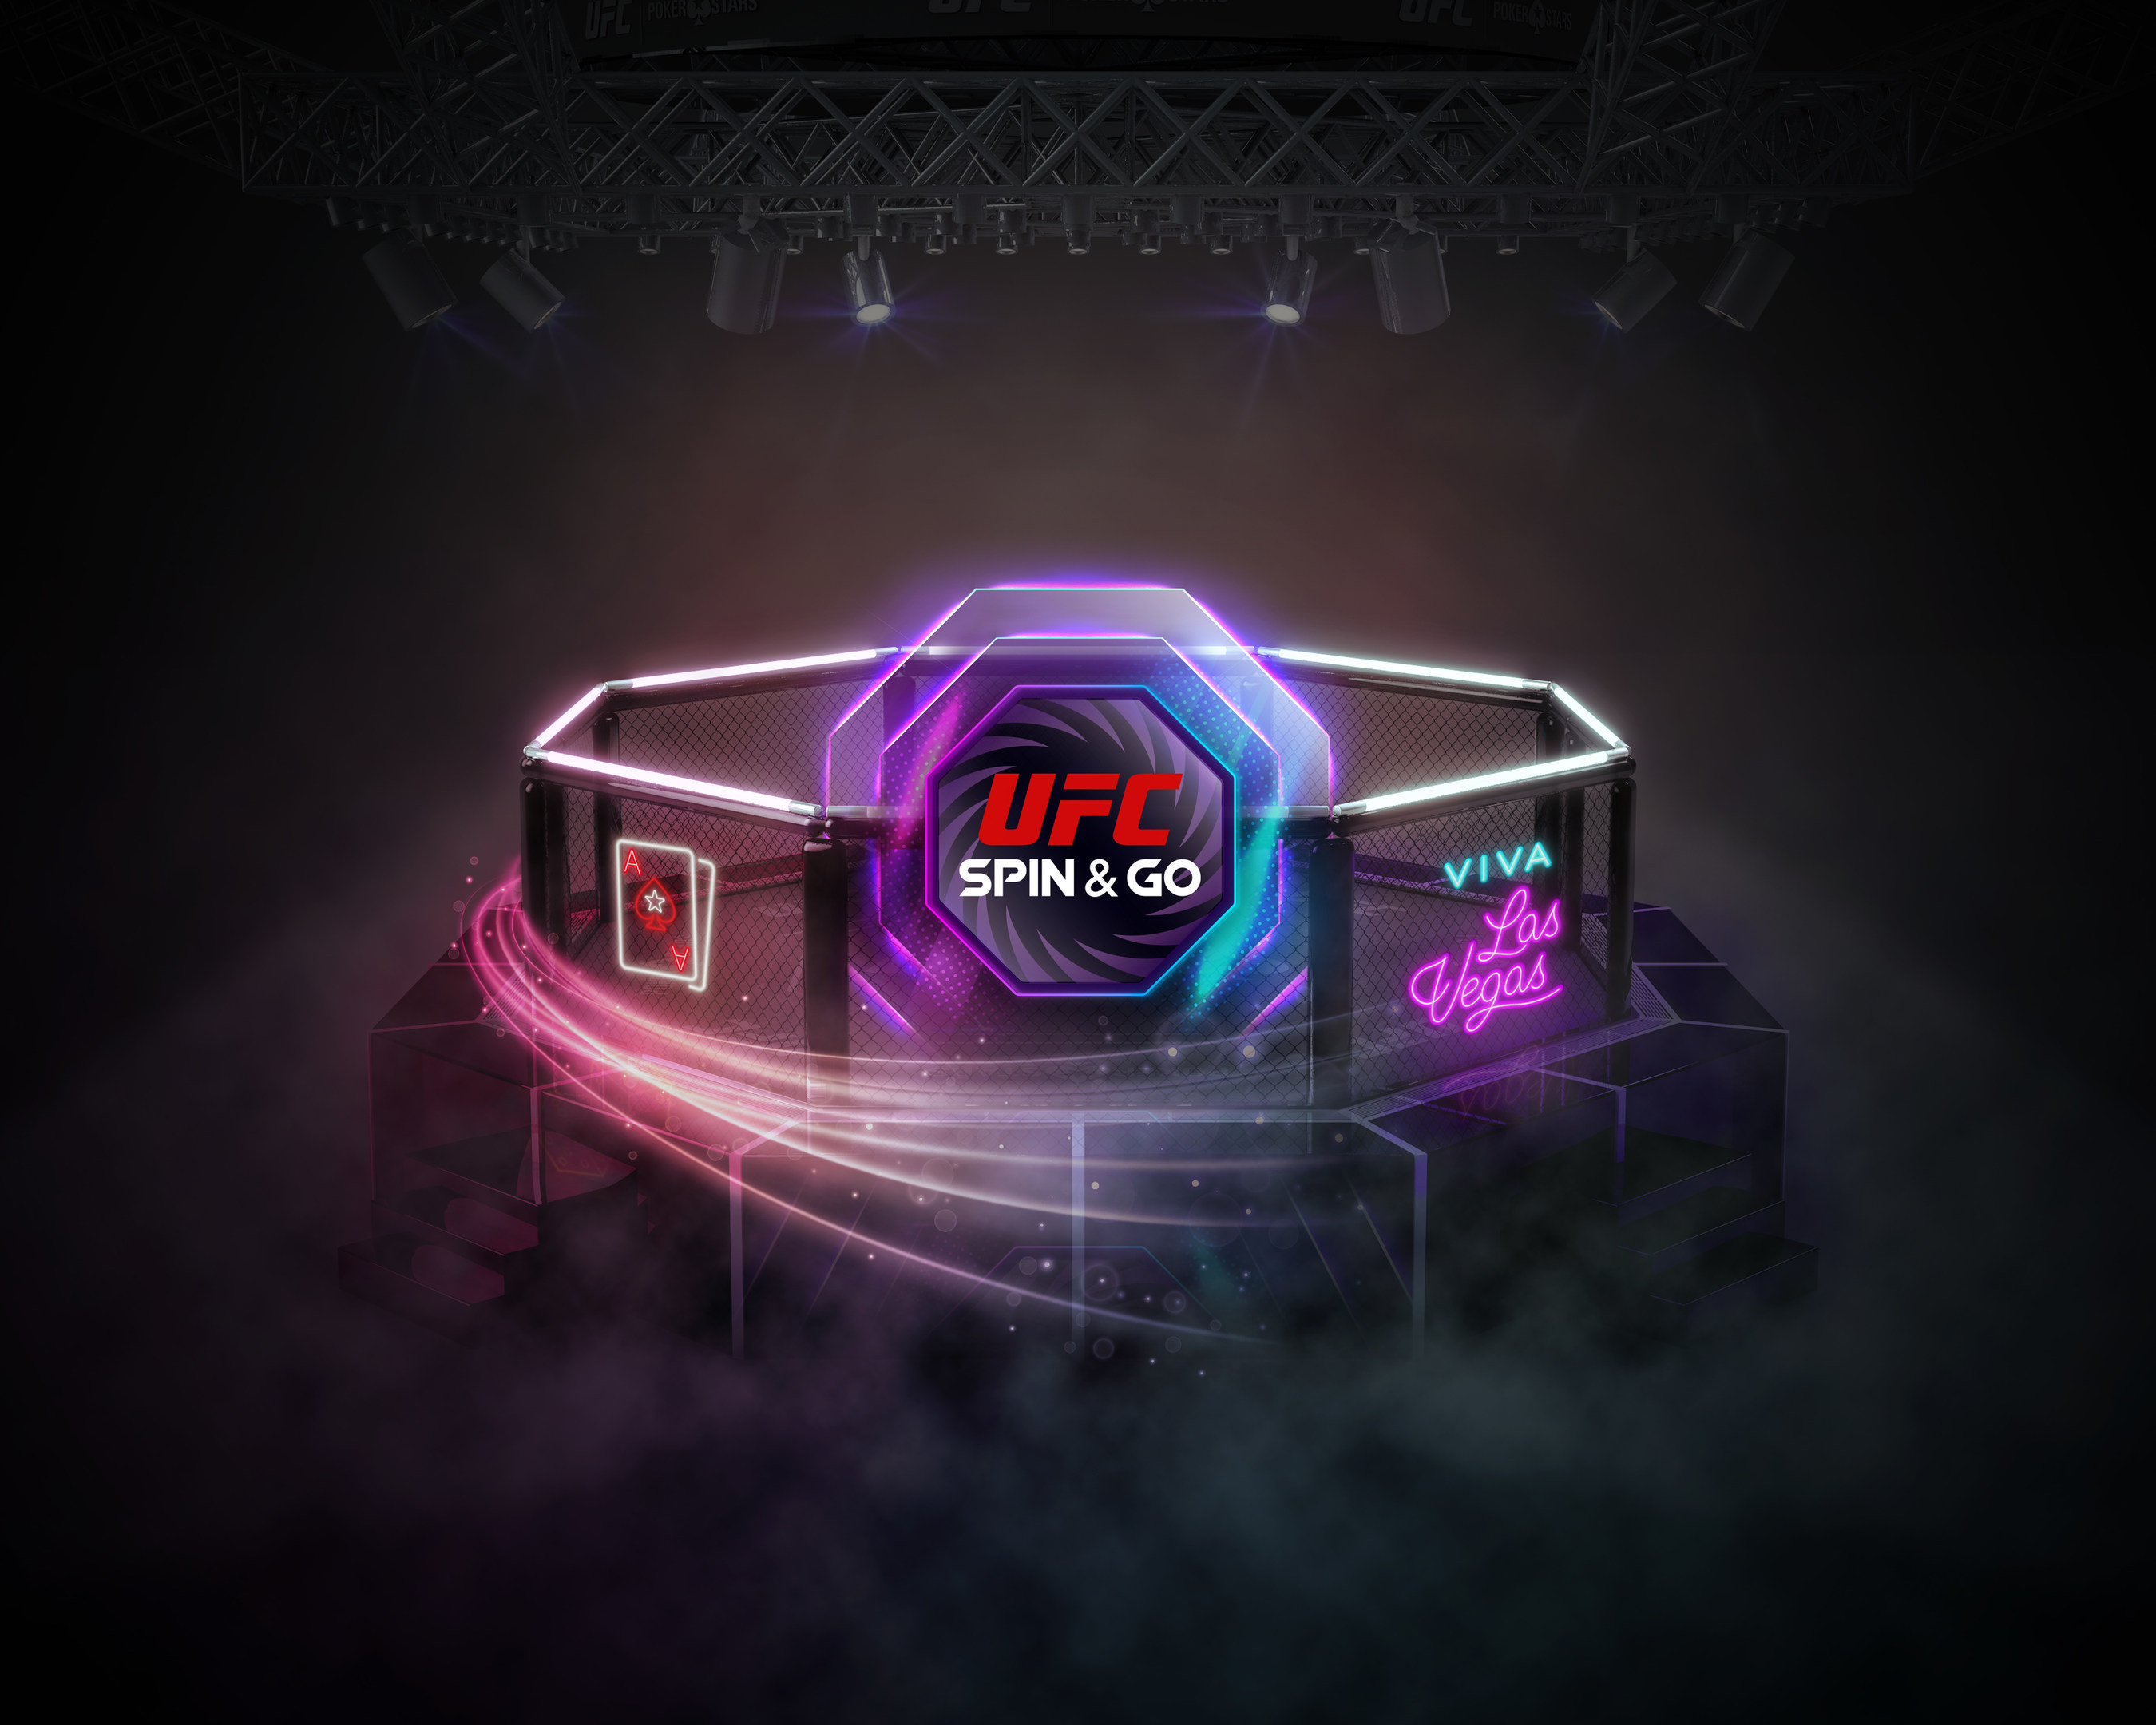 PokerStars launches UFC Spin & Go as Part of Partnership With UFC